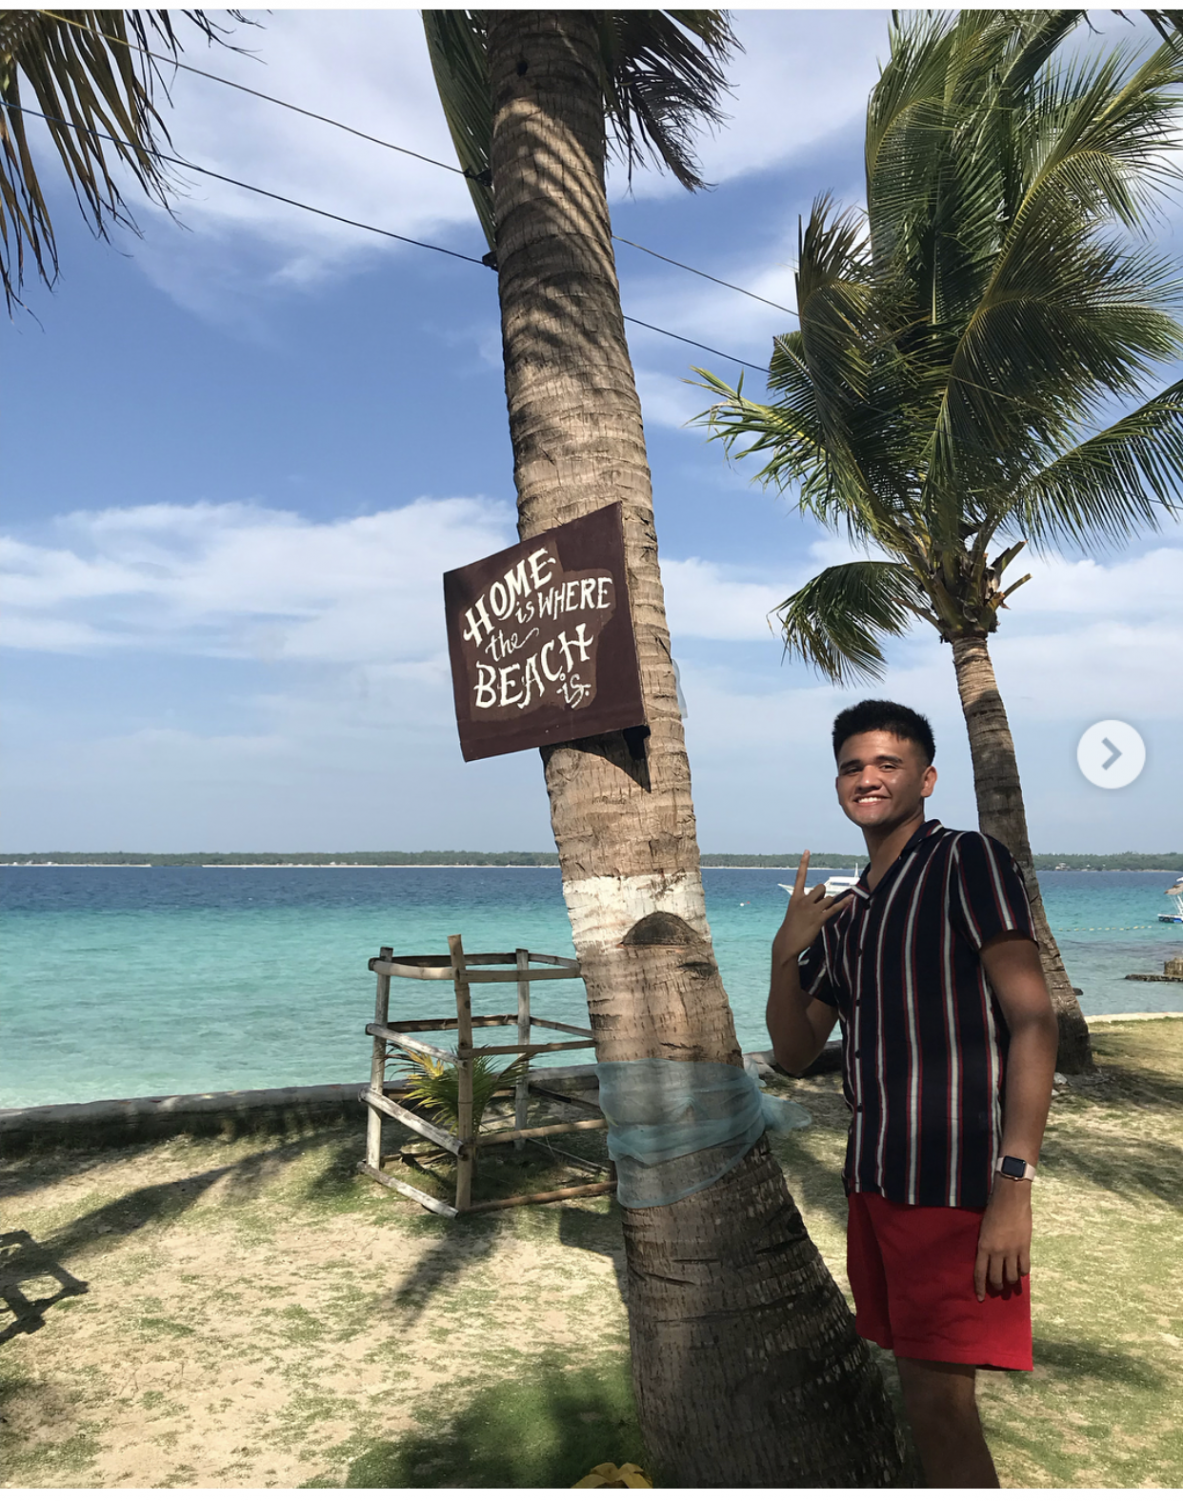 Senior JonPatrick poses in front of a palm tree at one of the few islands he visited back home during the summer. JohnPatrick moved from the Philippines to the states when he was younger and goes back during summer to see family and reconnect.